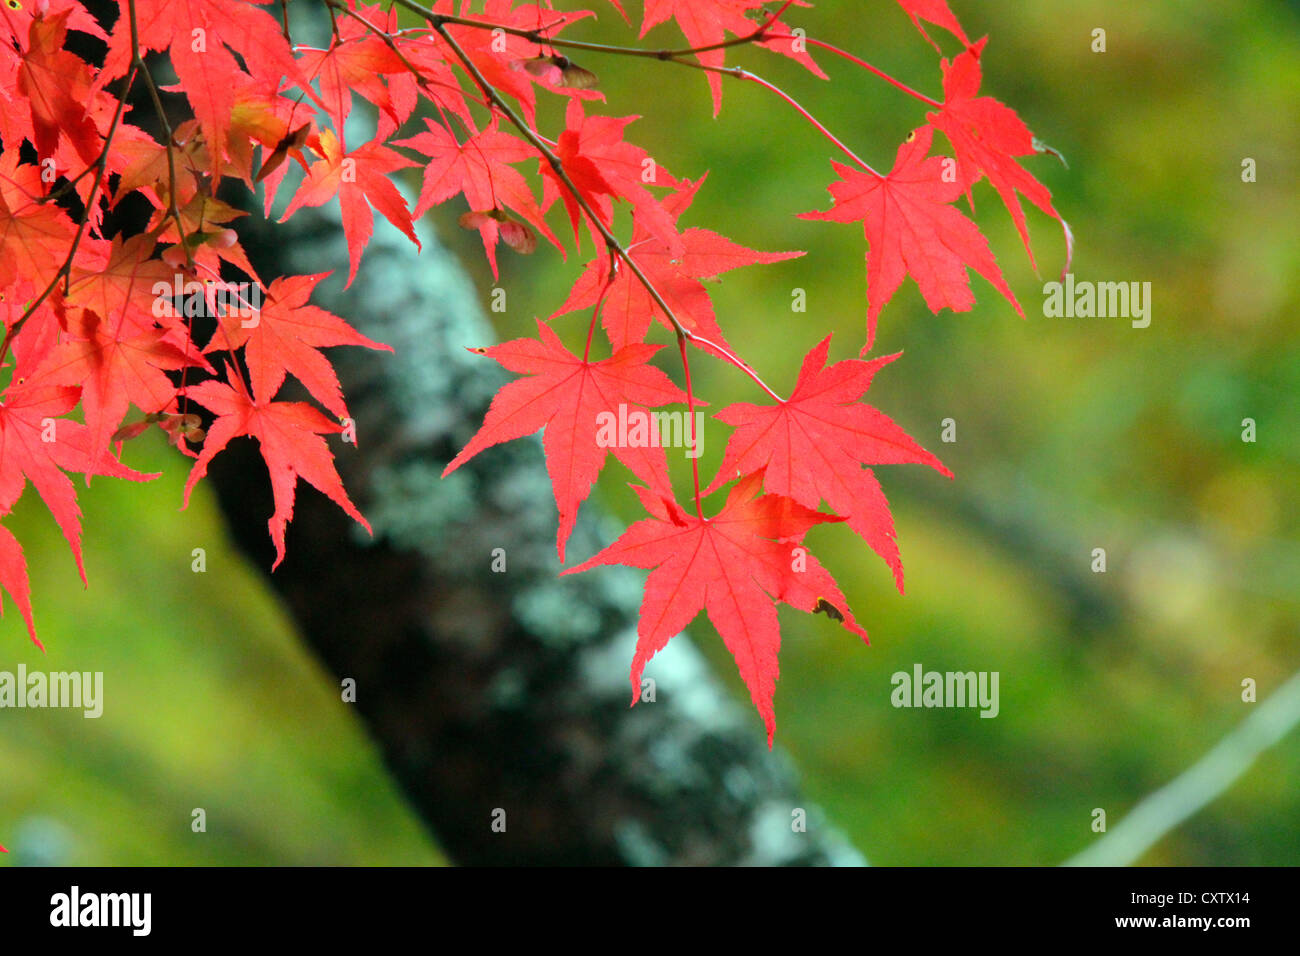 Autumn Leaf Color Lake Sai Ko Stock Photos & Autumn Leaf Color Lake ...